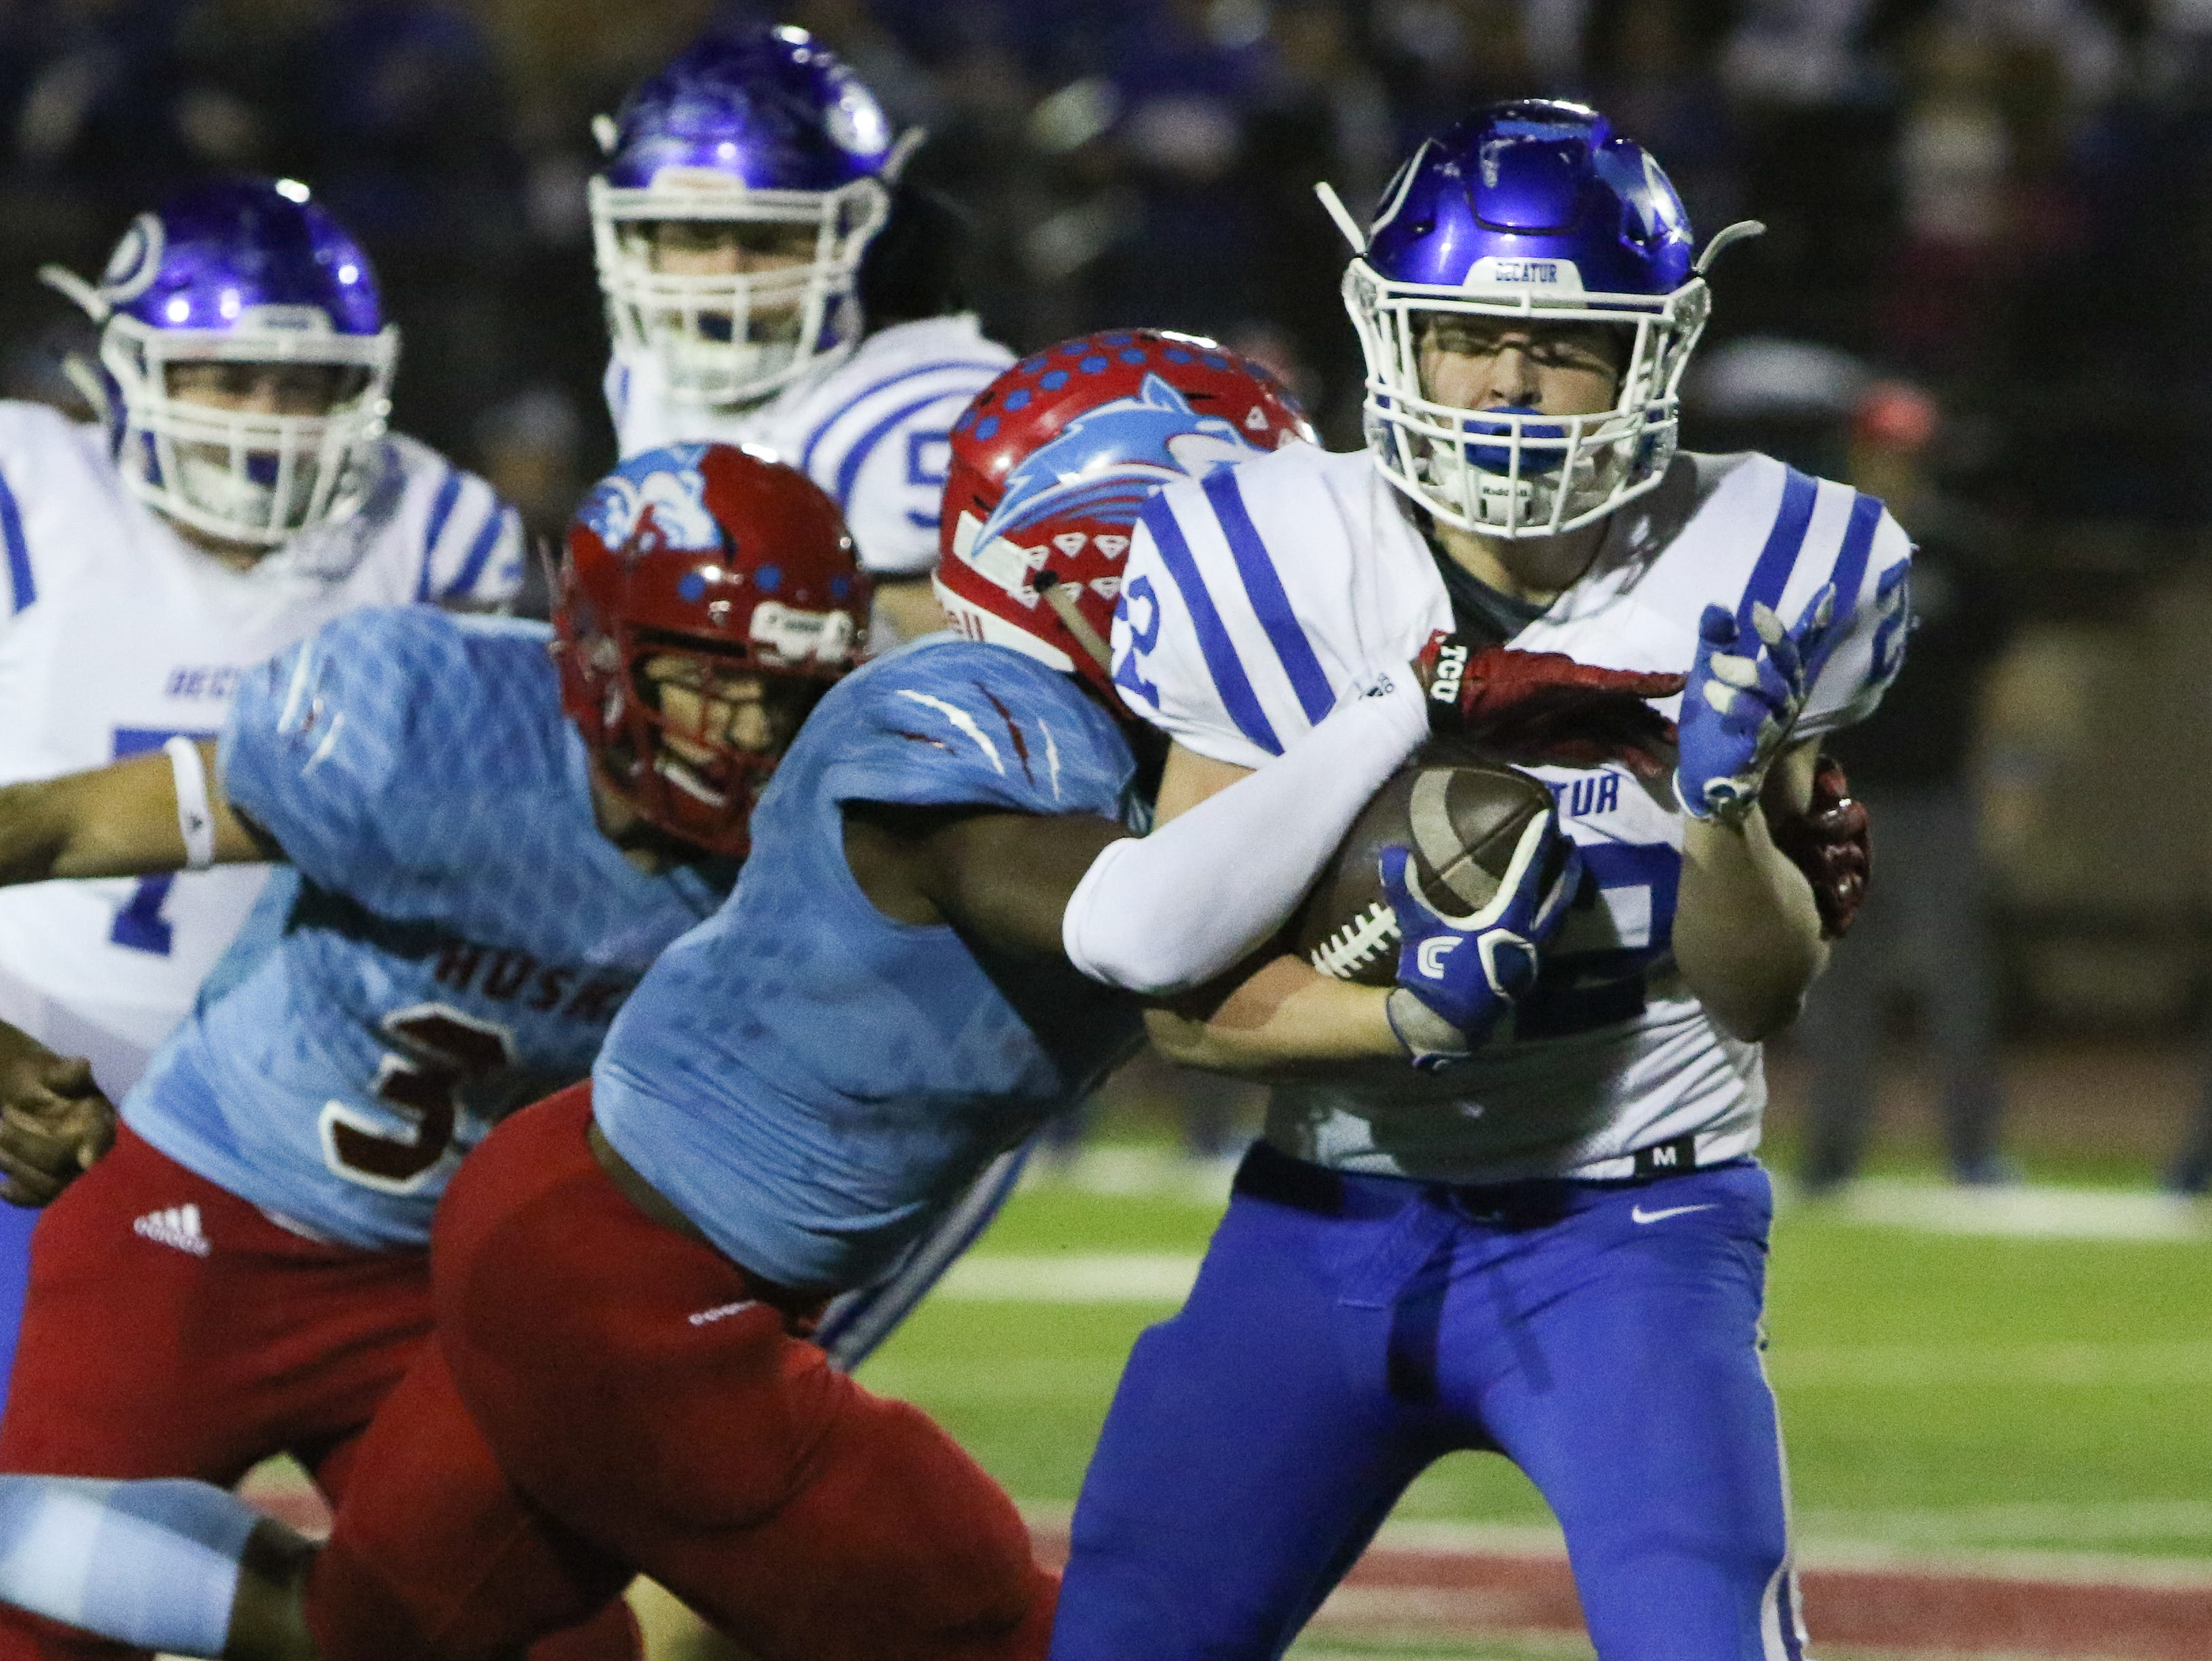 Hirschi's Daimarqua Foster tackles Decatur's Gunner Ragsdale Friday, Nov. 30, 2018, at Newton Field in Graham.